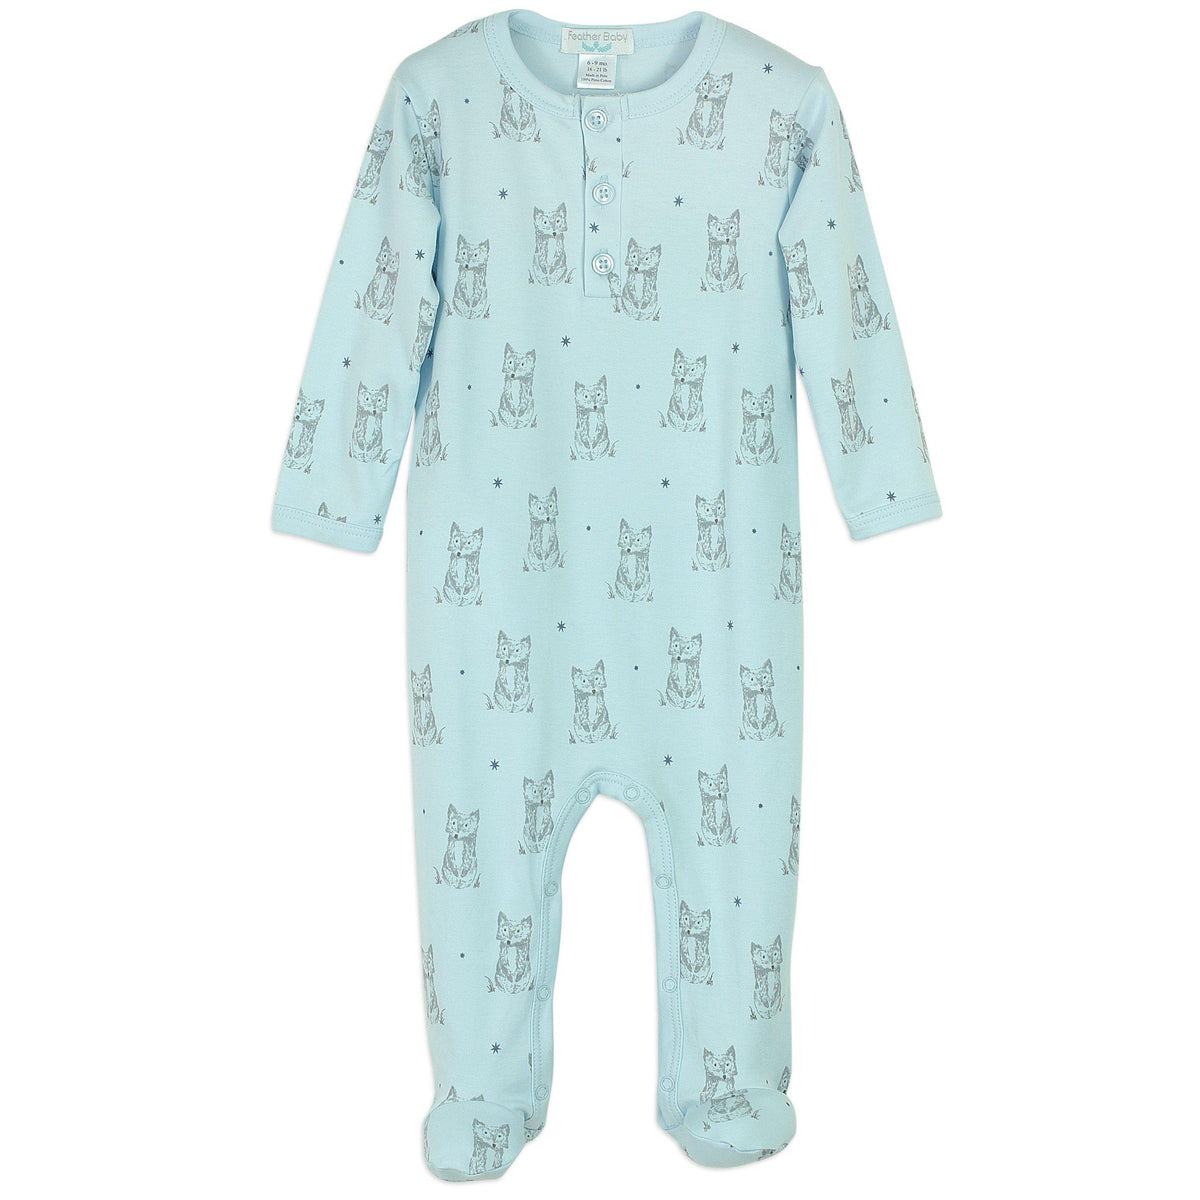 Henley Footie~Patient Fox on Baby Blue-Footies-Soft Pima Cotton-Free Shipping-Baby Gift Wrap-Feather Baby